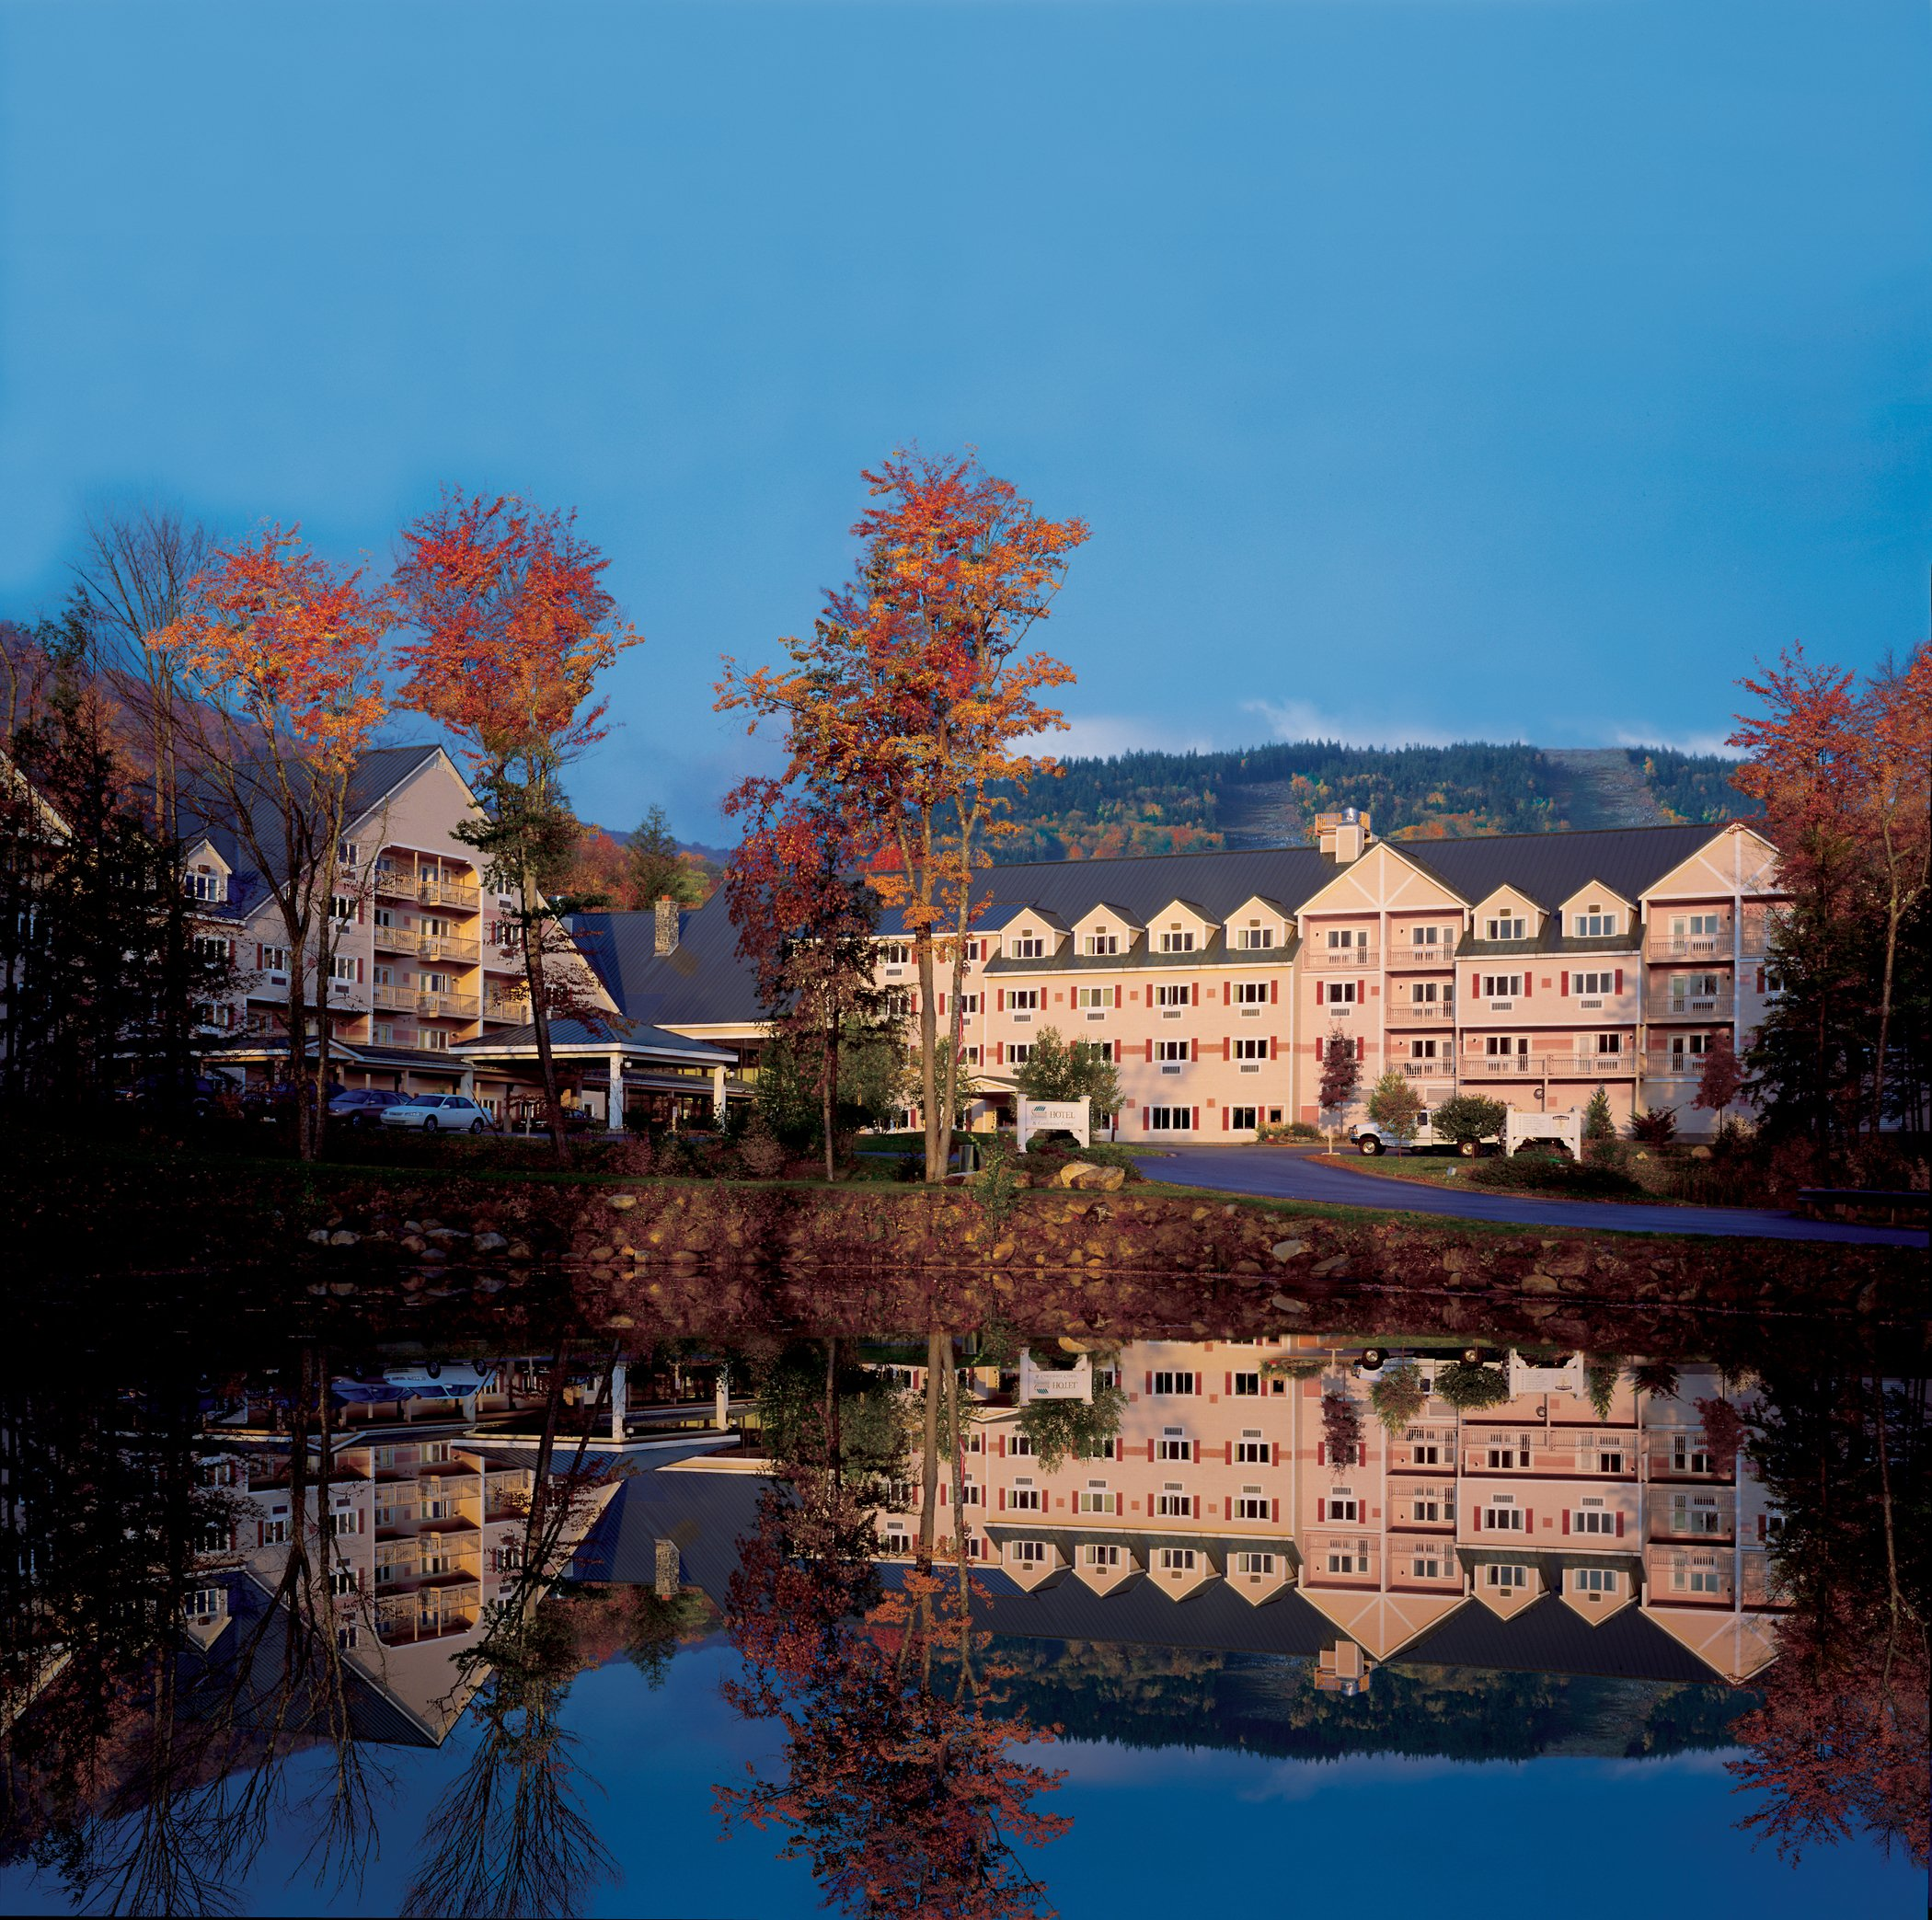 At the resort's entrance sits the Grand Summit Hotel with all of the amenities you would expect from a full-service hotel like a health club, spa, and a heated outdoor pool.